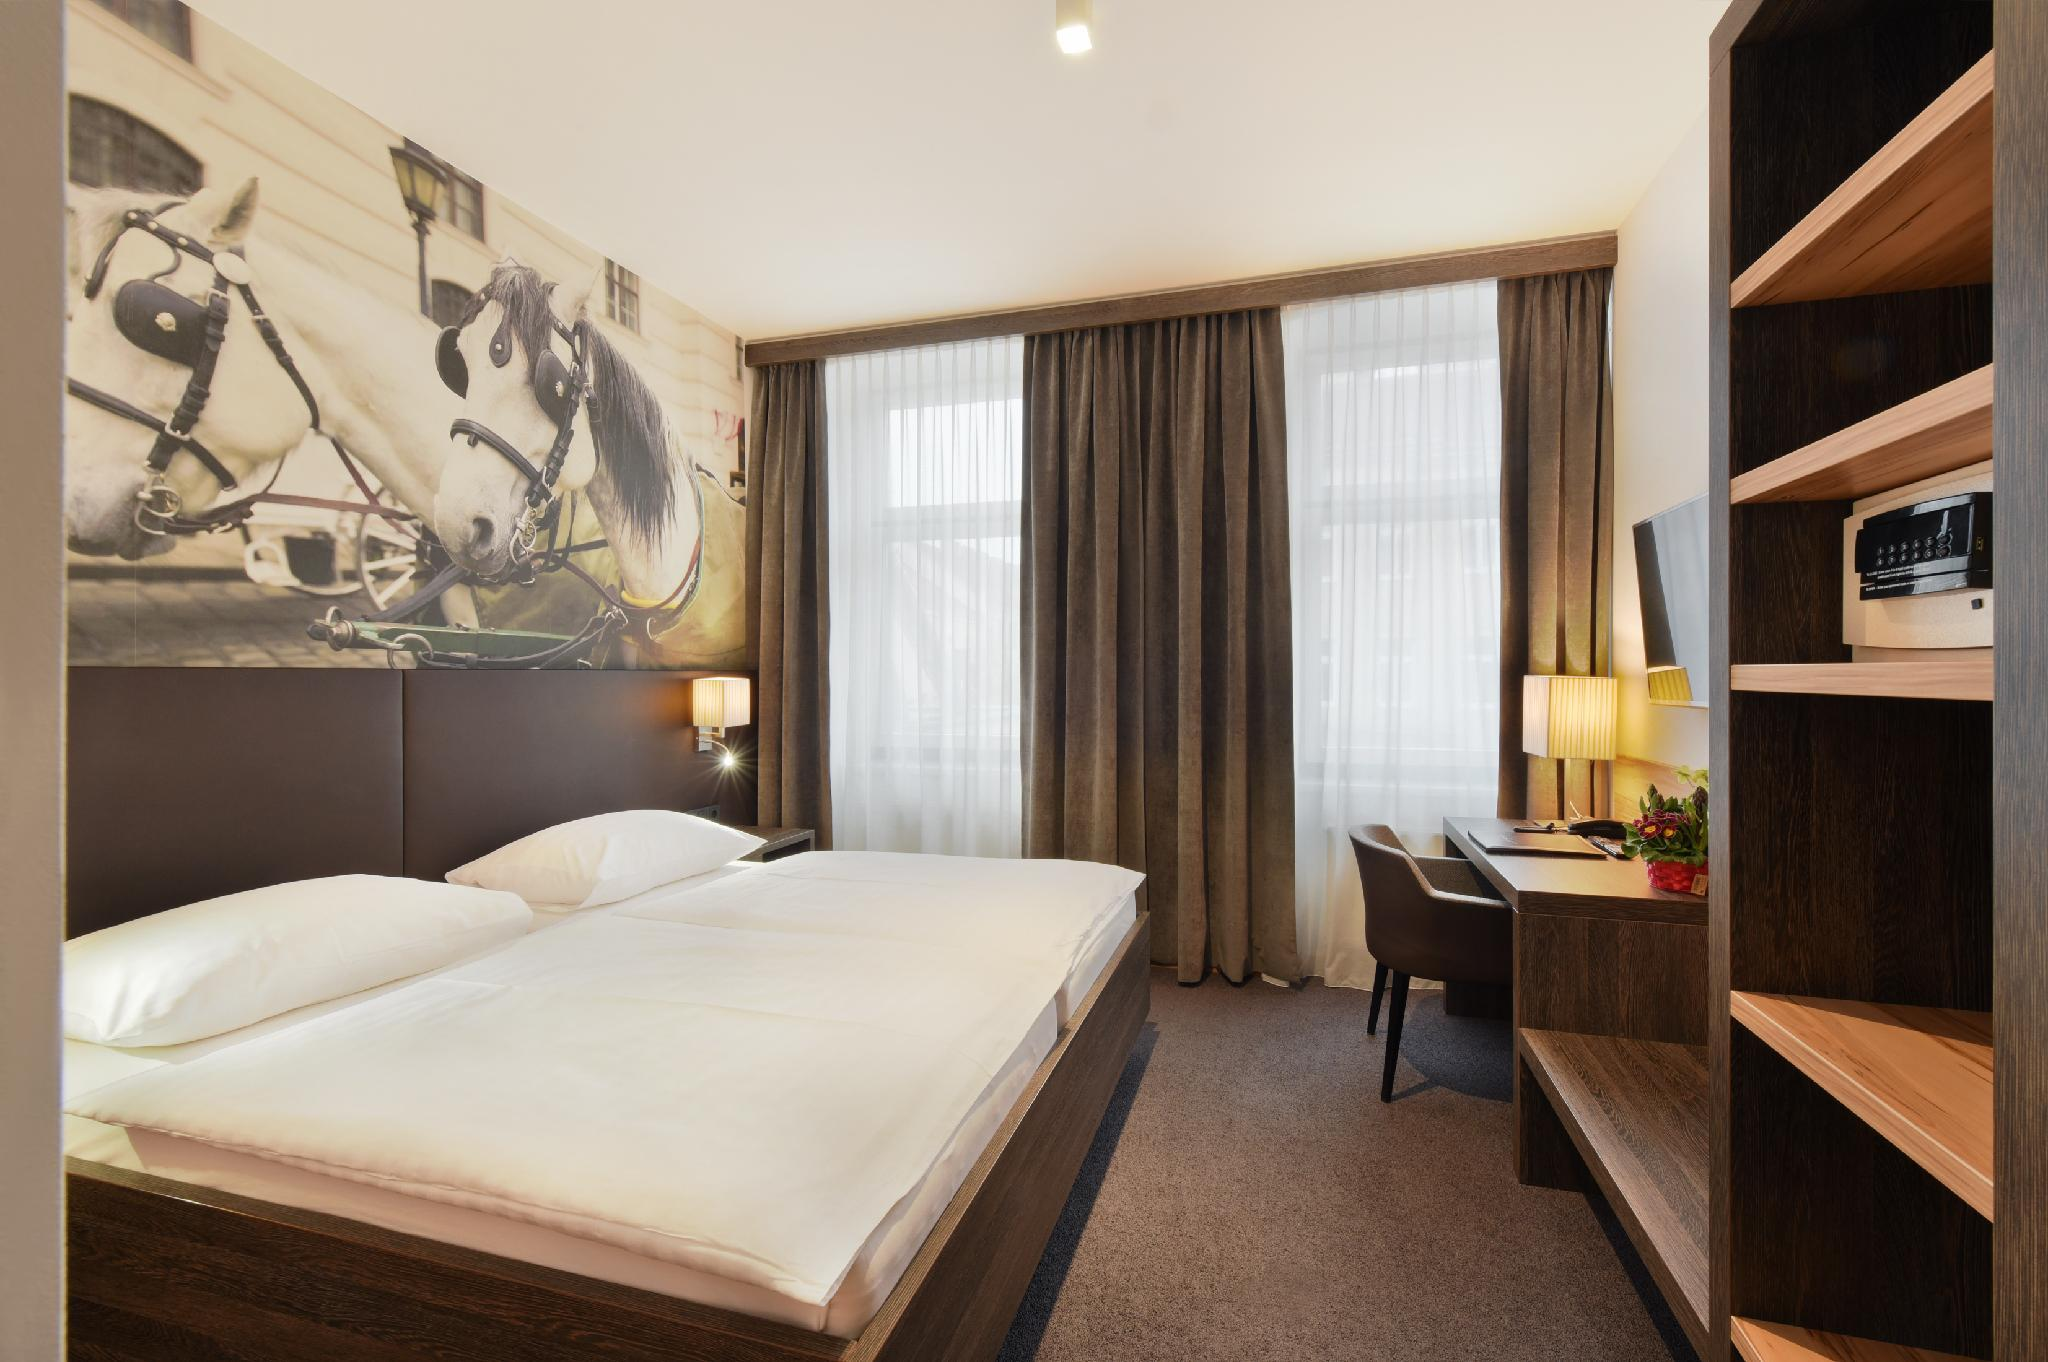 More about Hotel Lucia Best Price on